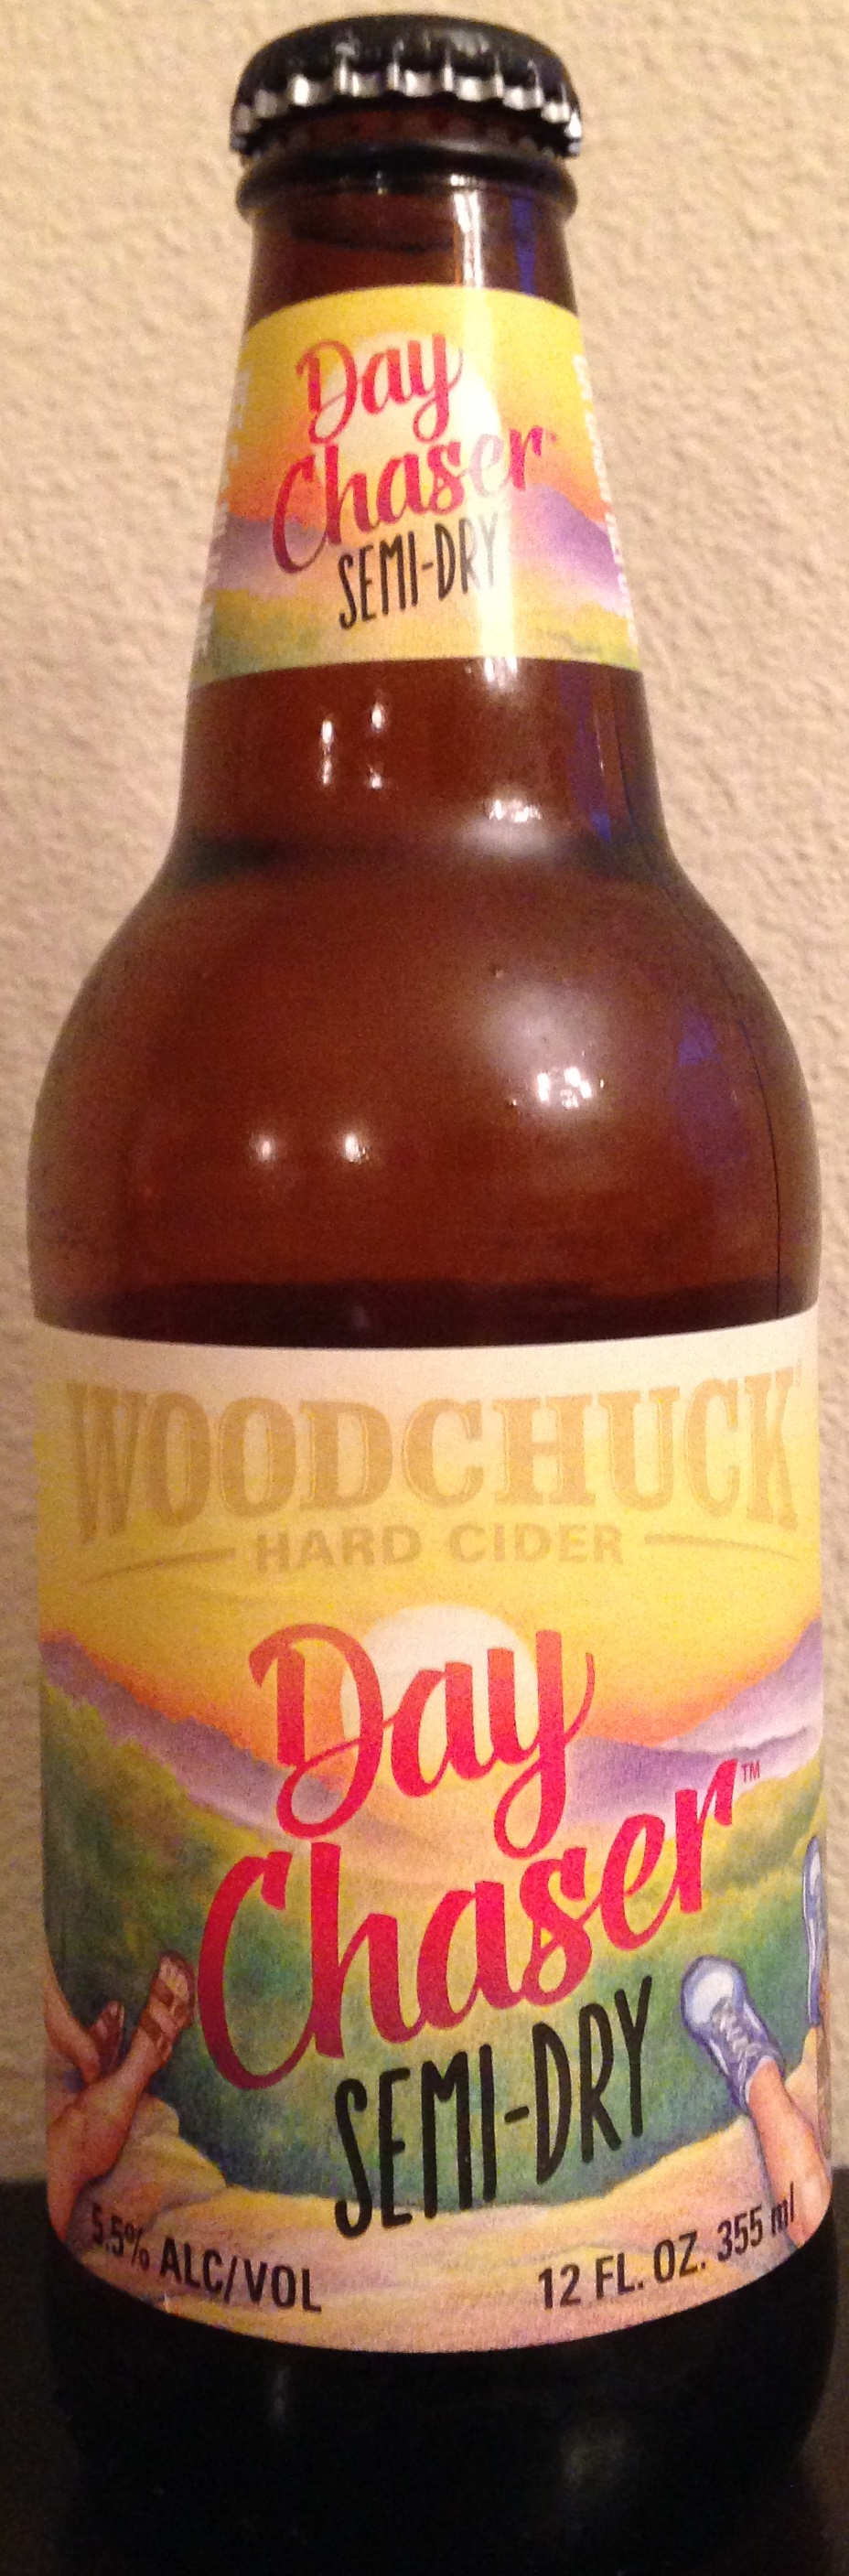 Woodchuck Day Chaser